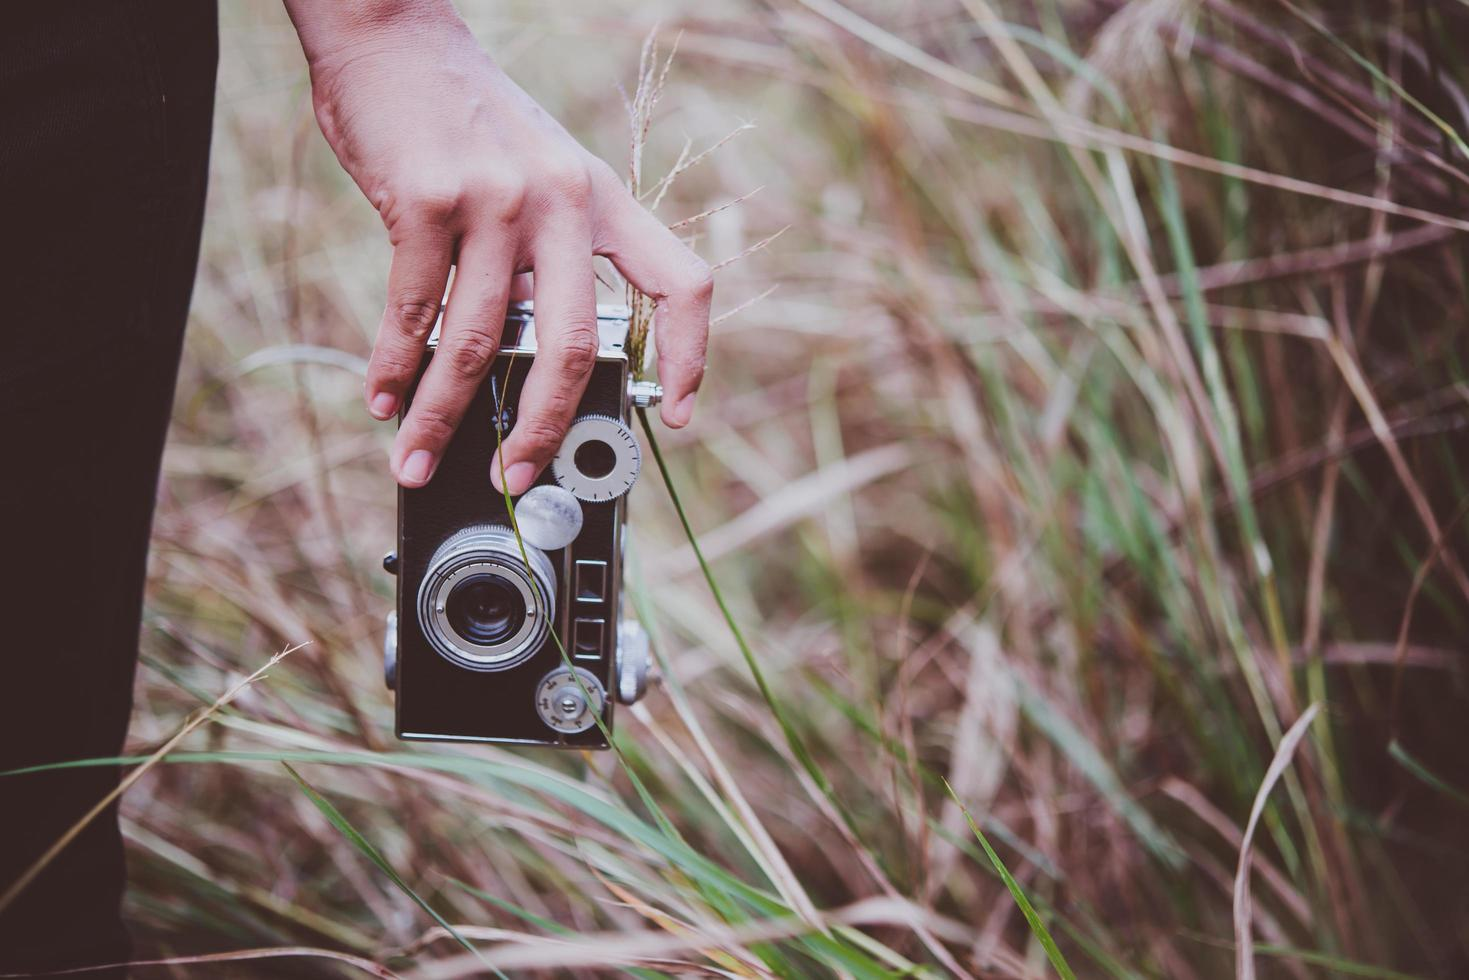 Close-up of a young woman's hand holding a retro camera in a field photo